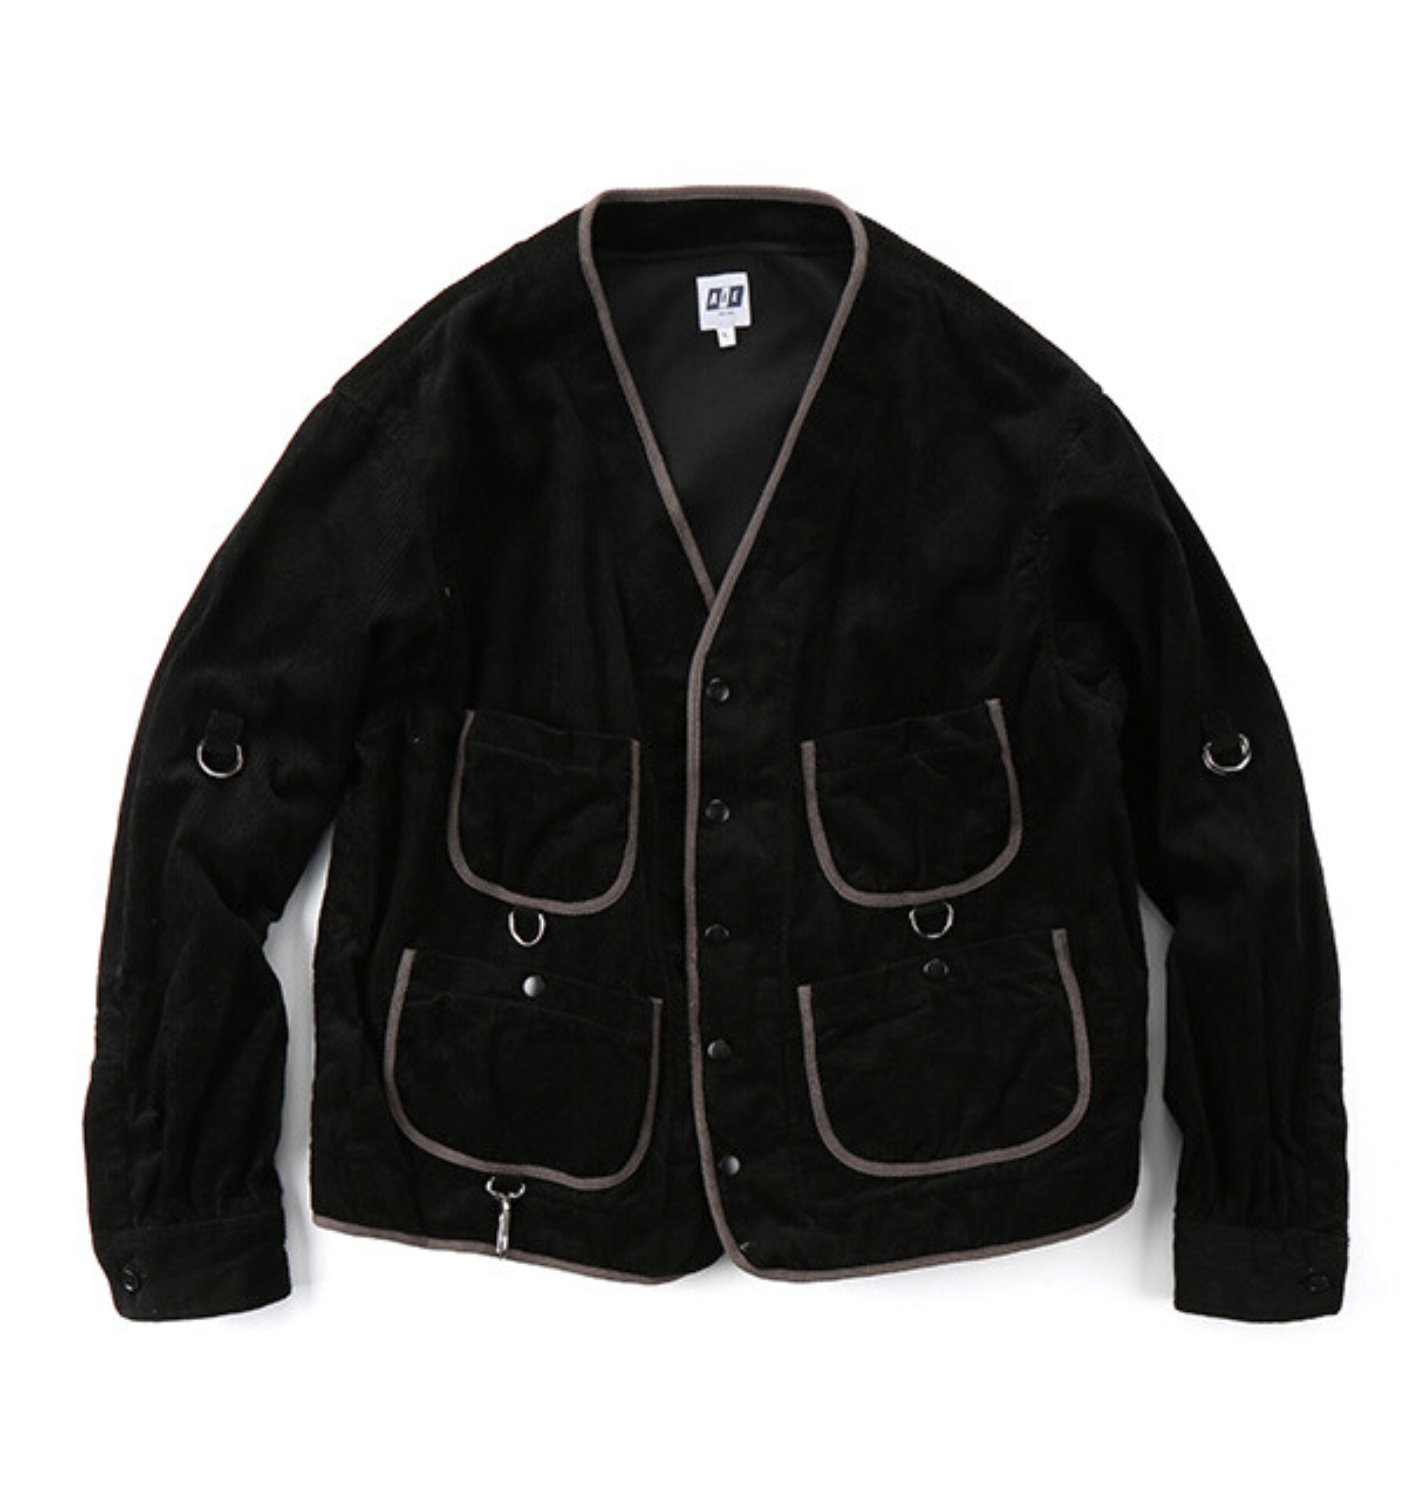 WRD JACKET BLACK COTTON 8W CORDUROY